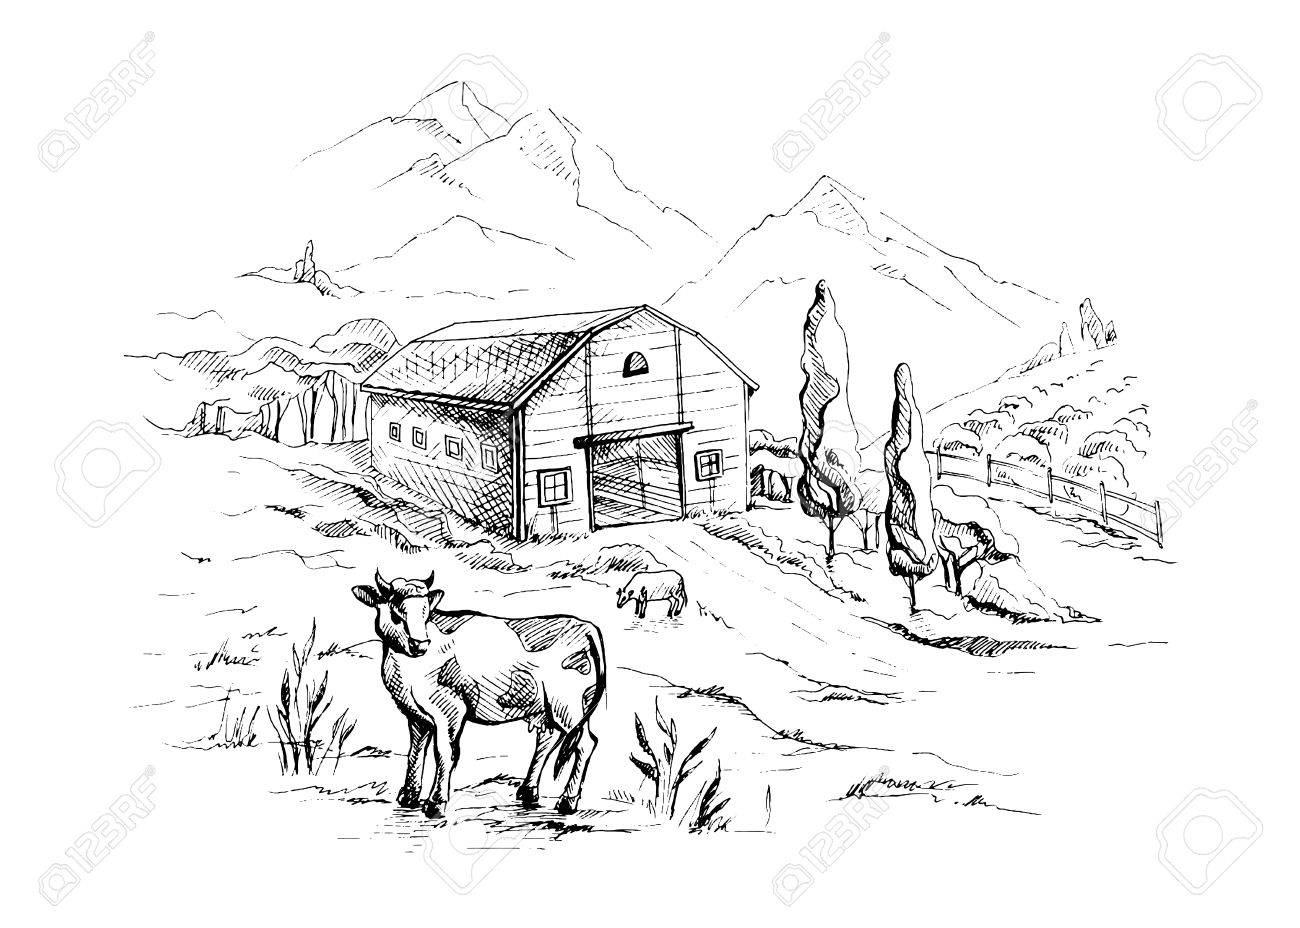 1300x928 Rural Landscape With Cows And Farm With Mountain Scenery